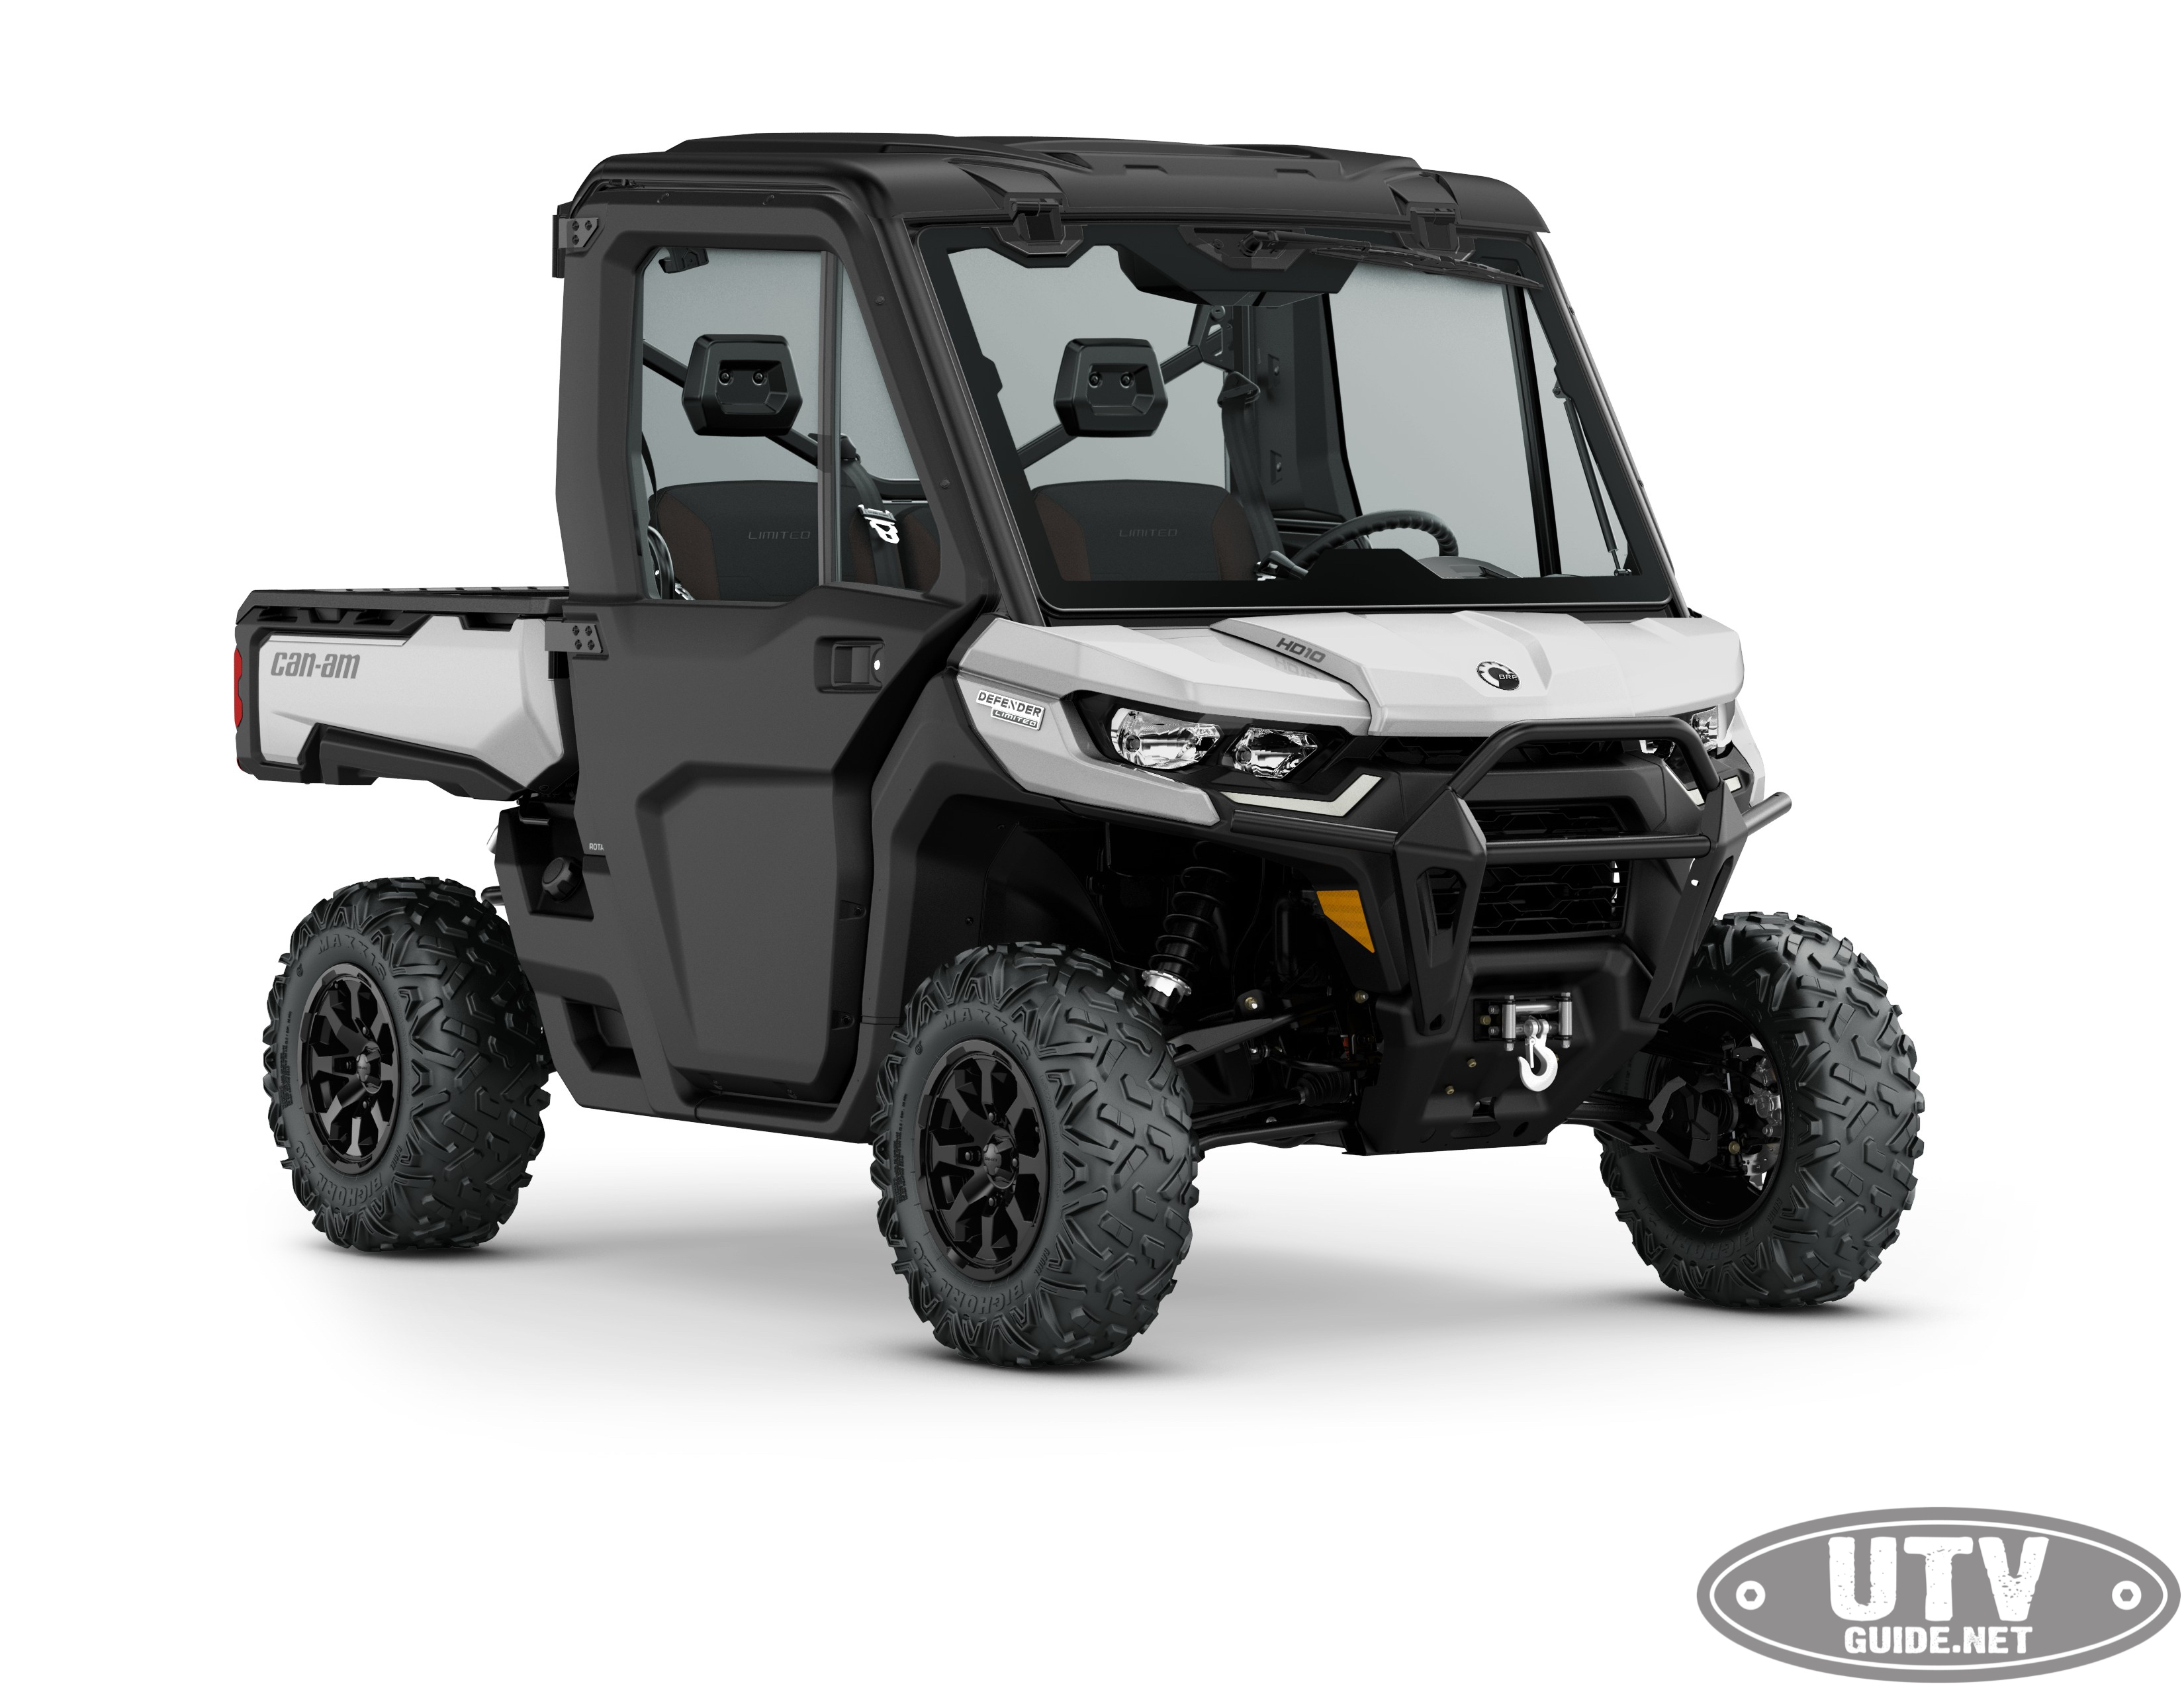 2020 CAN-AM DEFENDER LIMITED HD10 with HVAC